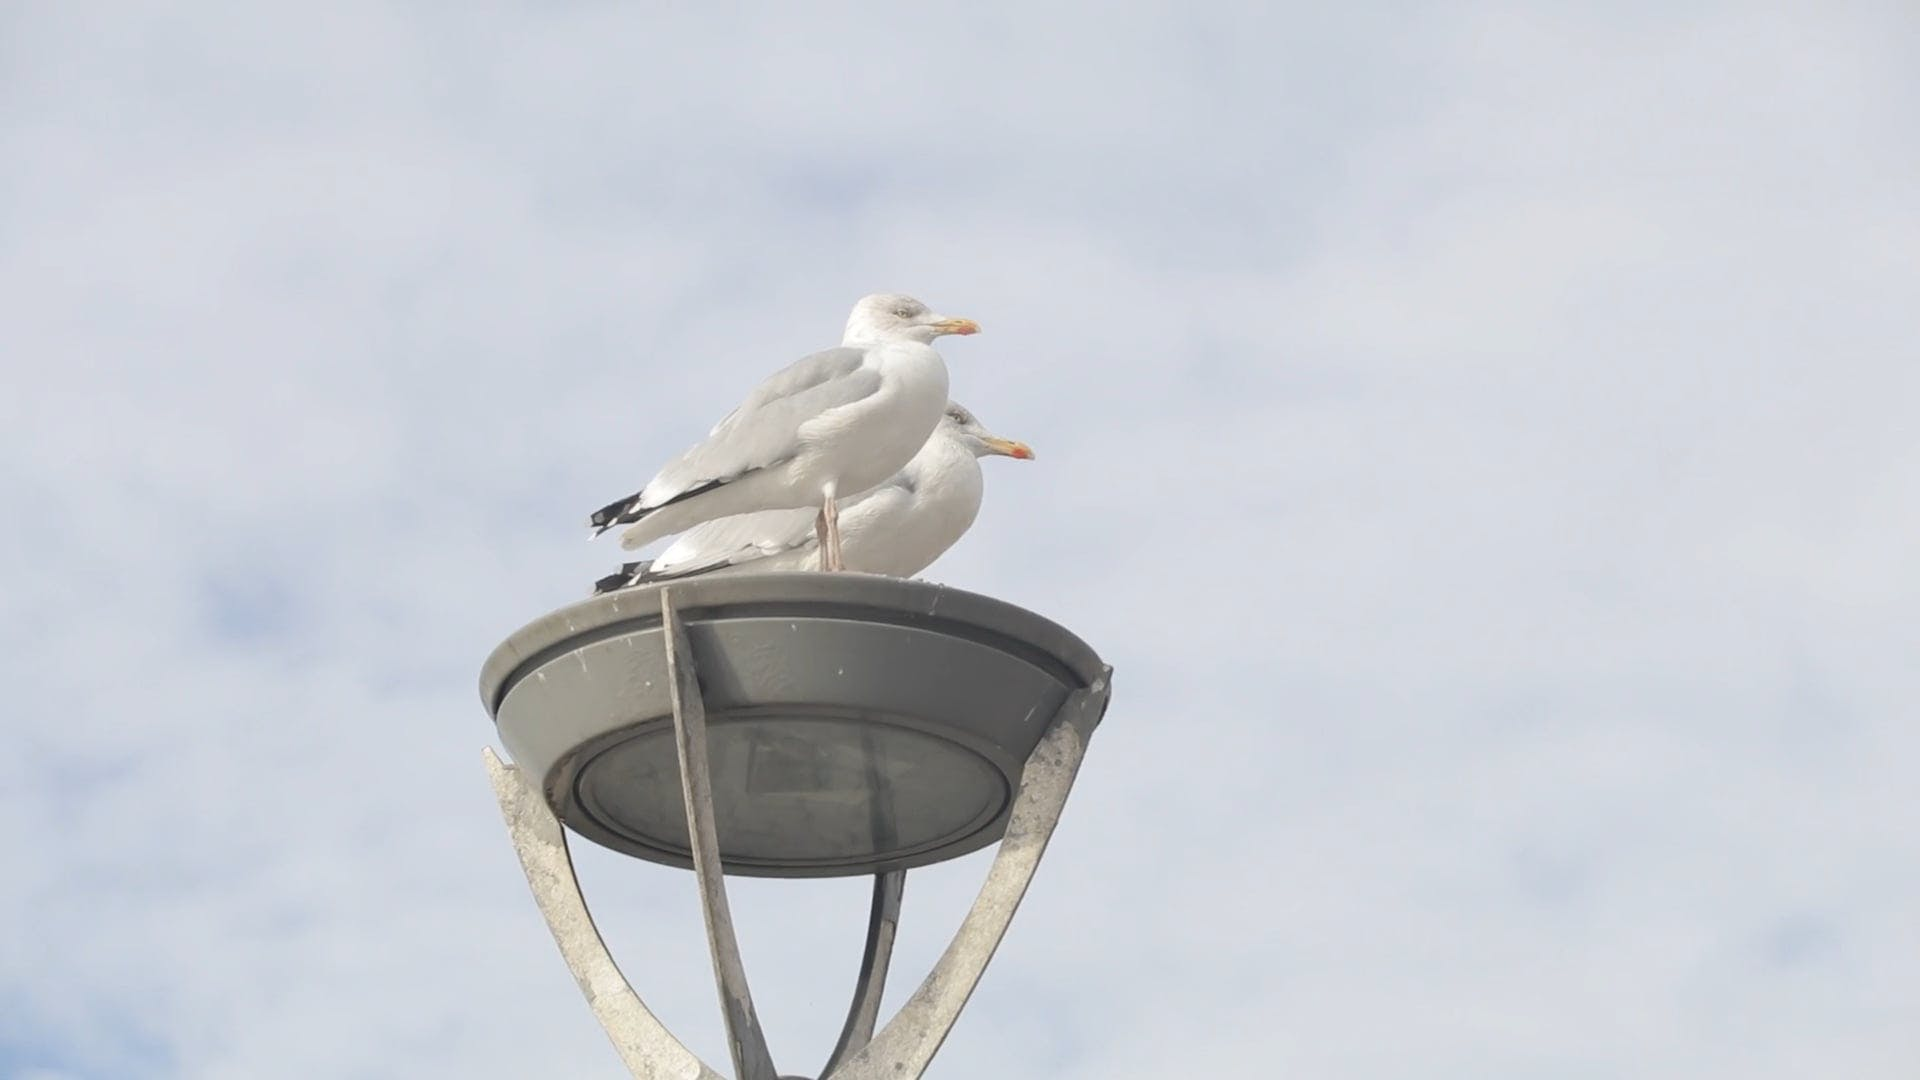 Two Seagulls Perched On A Metal Structure